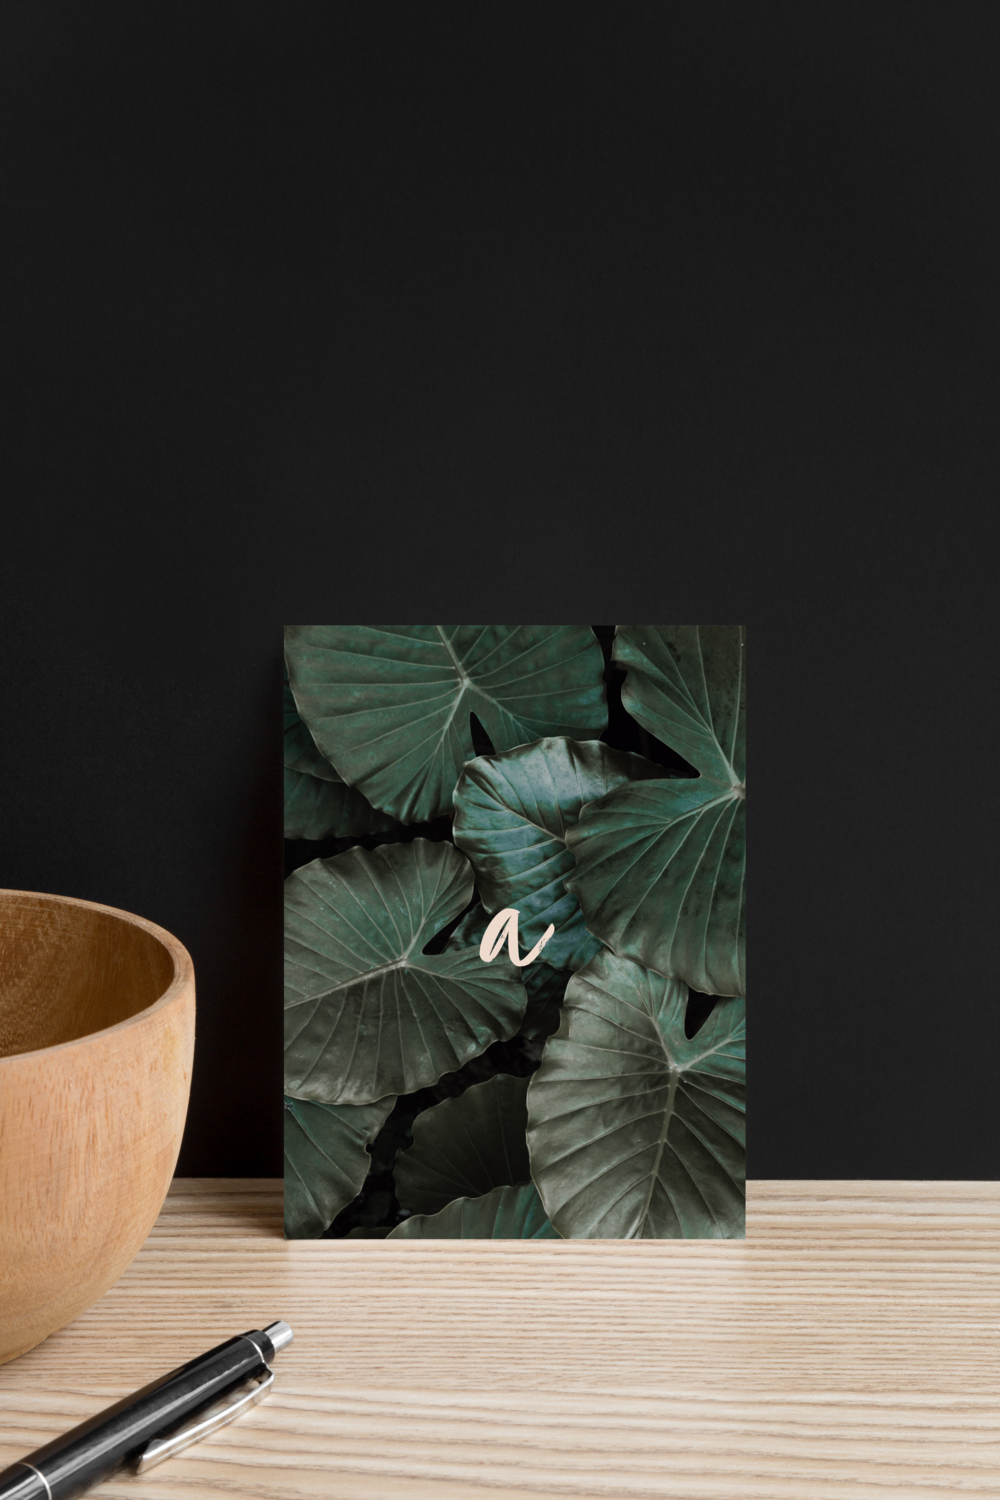 Green leaves on a postcard with Alexa Mazzarello's monogram logo. Black background, with a pen and a bowl nearby.